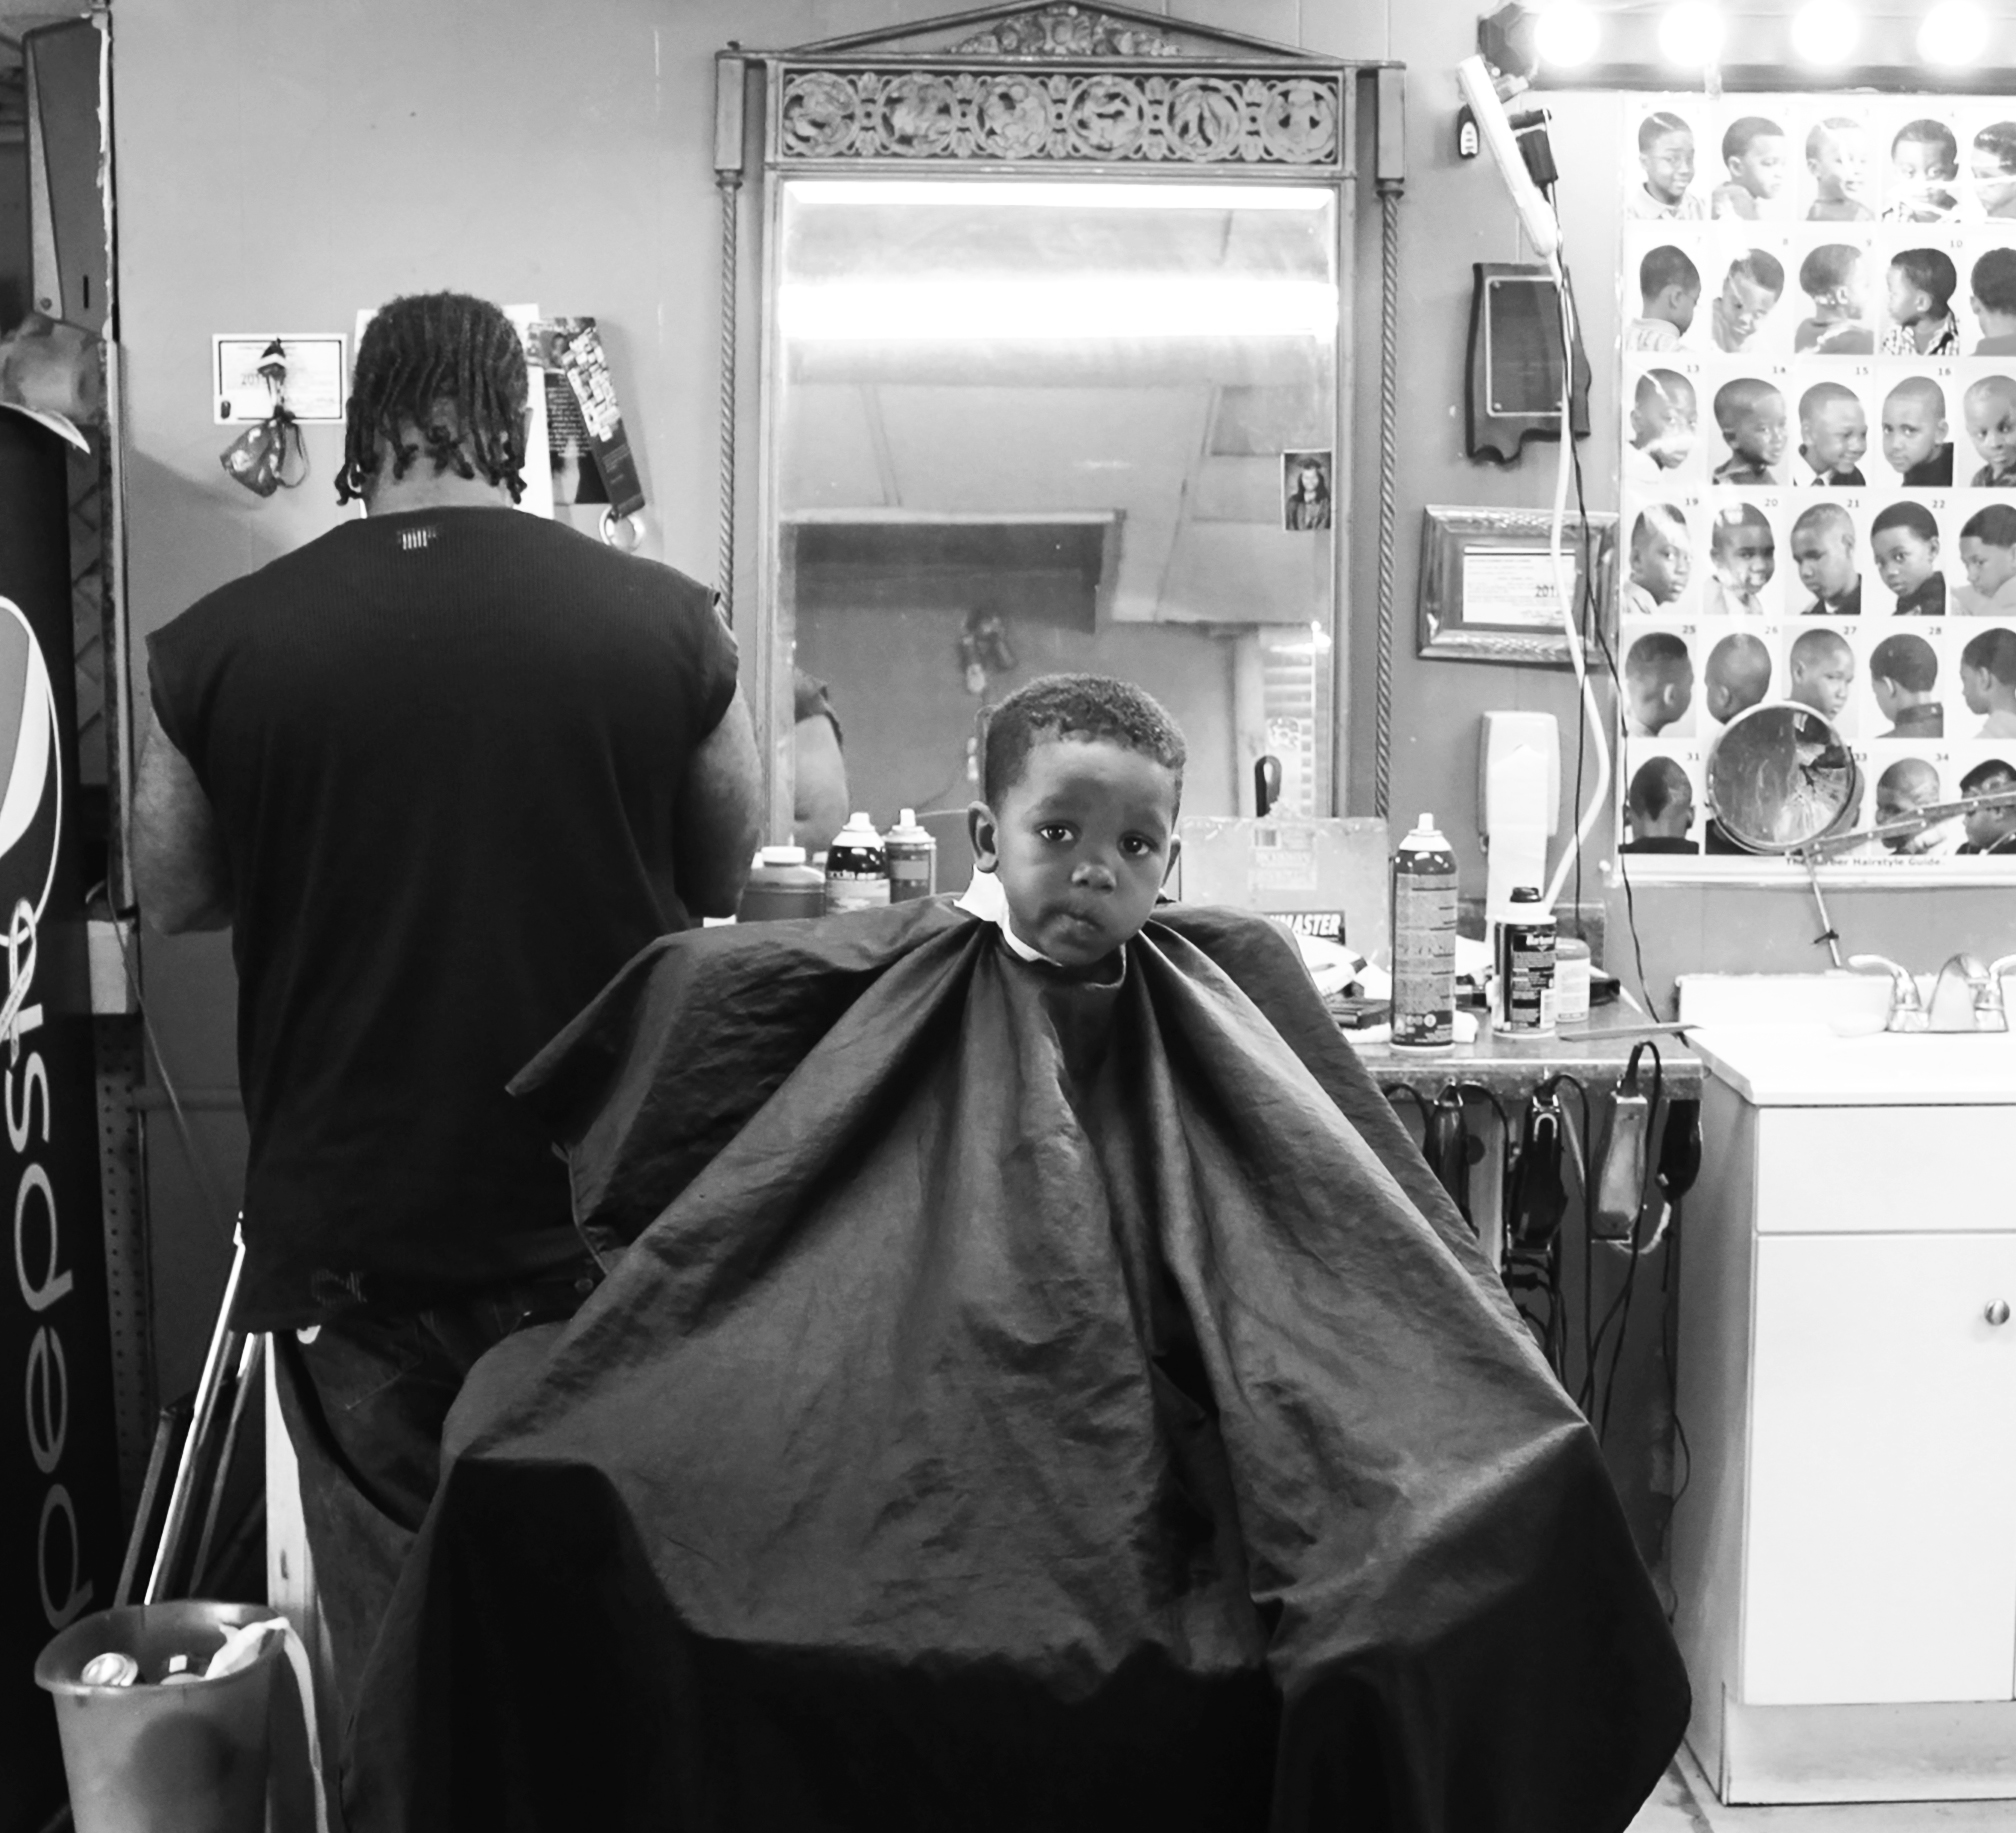 Boy in a barbershop